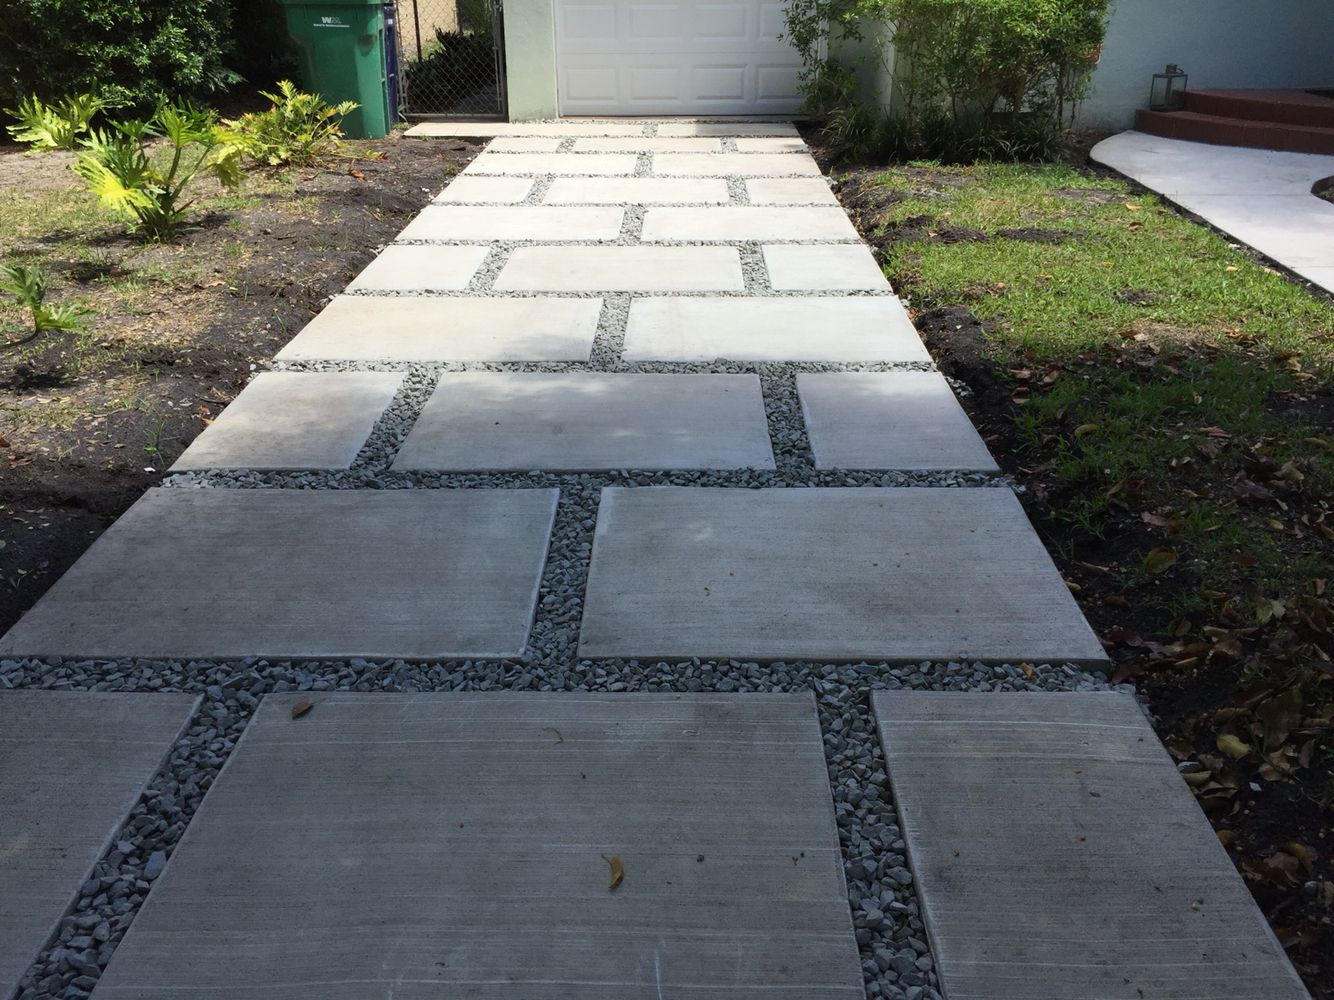 Concrete Paver Staggered Squares Design With 1 Gray Granite